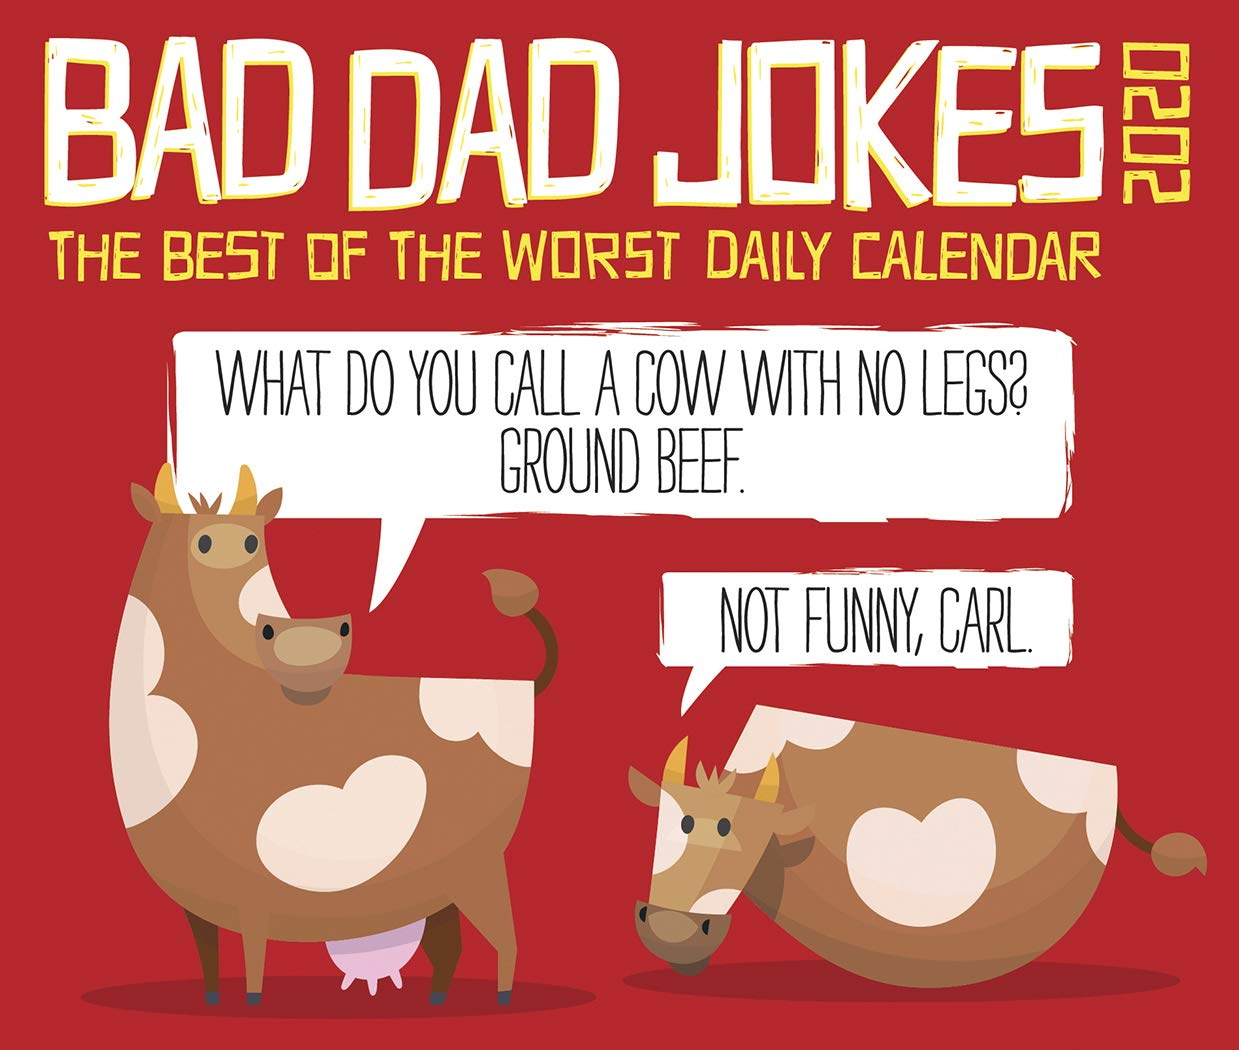 2020 Funny Calendars Bad Dad Jokes 2020 Calendar: Willow Creek Press: 0709786052967